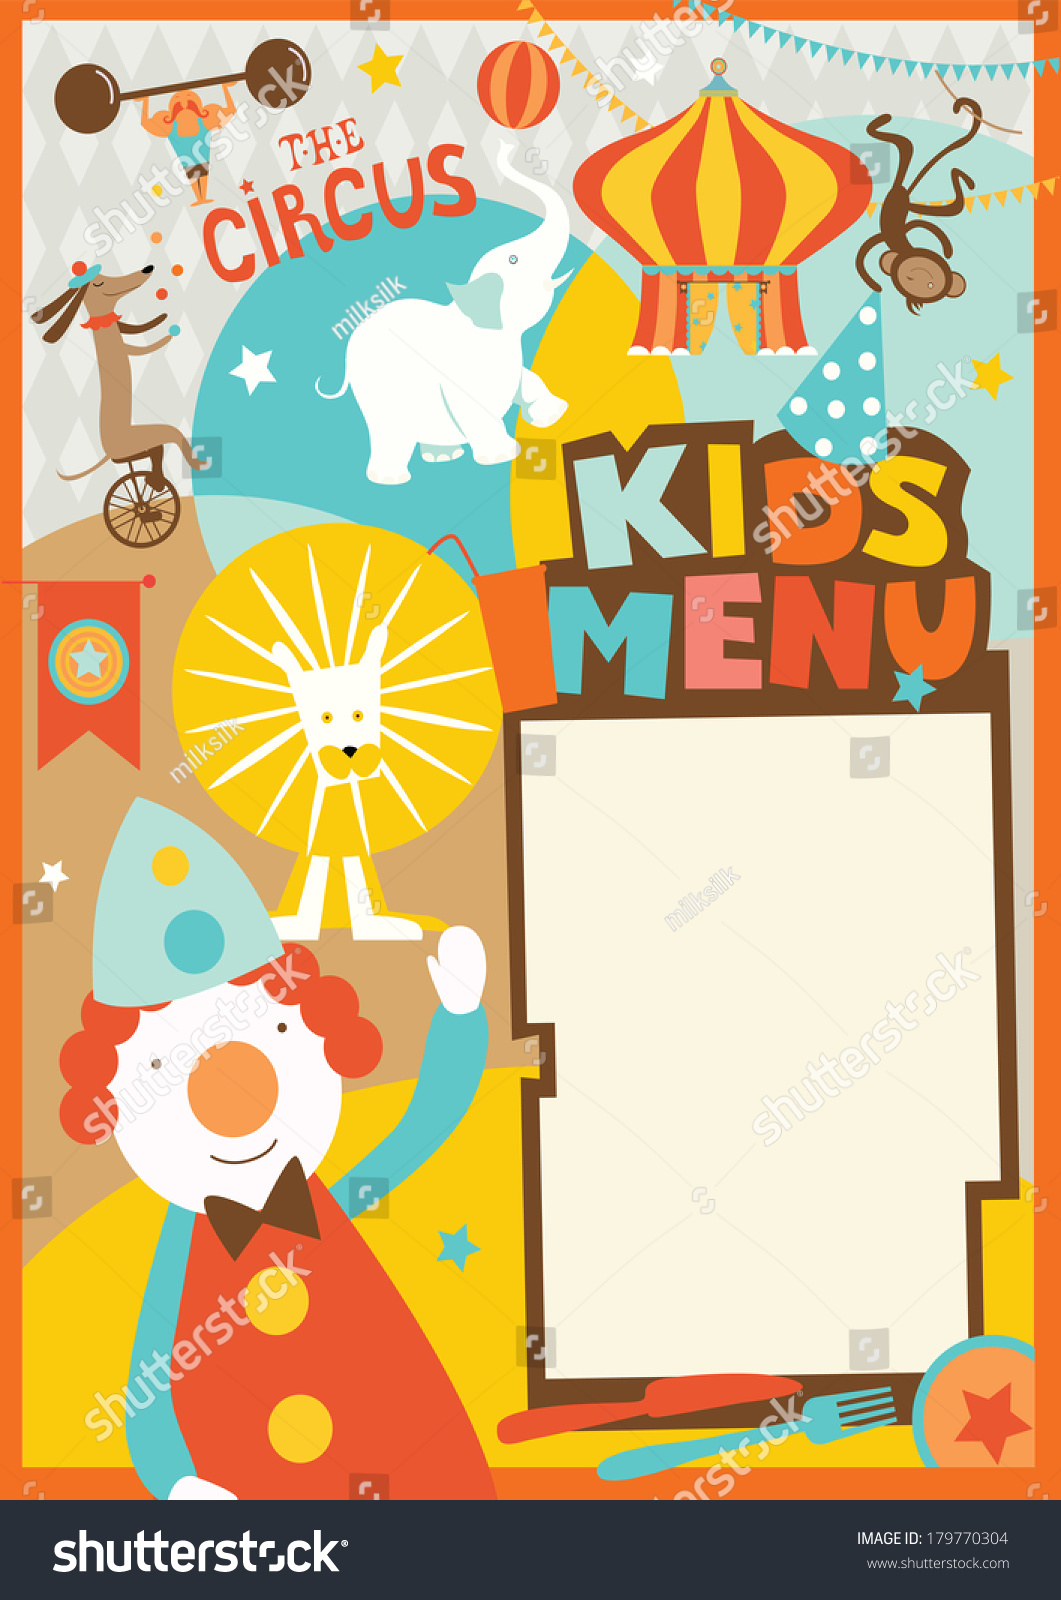 Menu Templates For Kids certification of appreciation wording – Kids Menu Templates